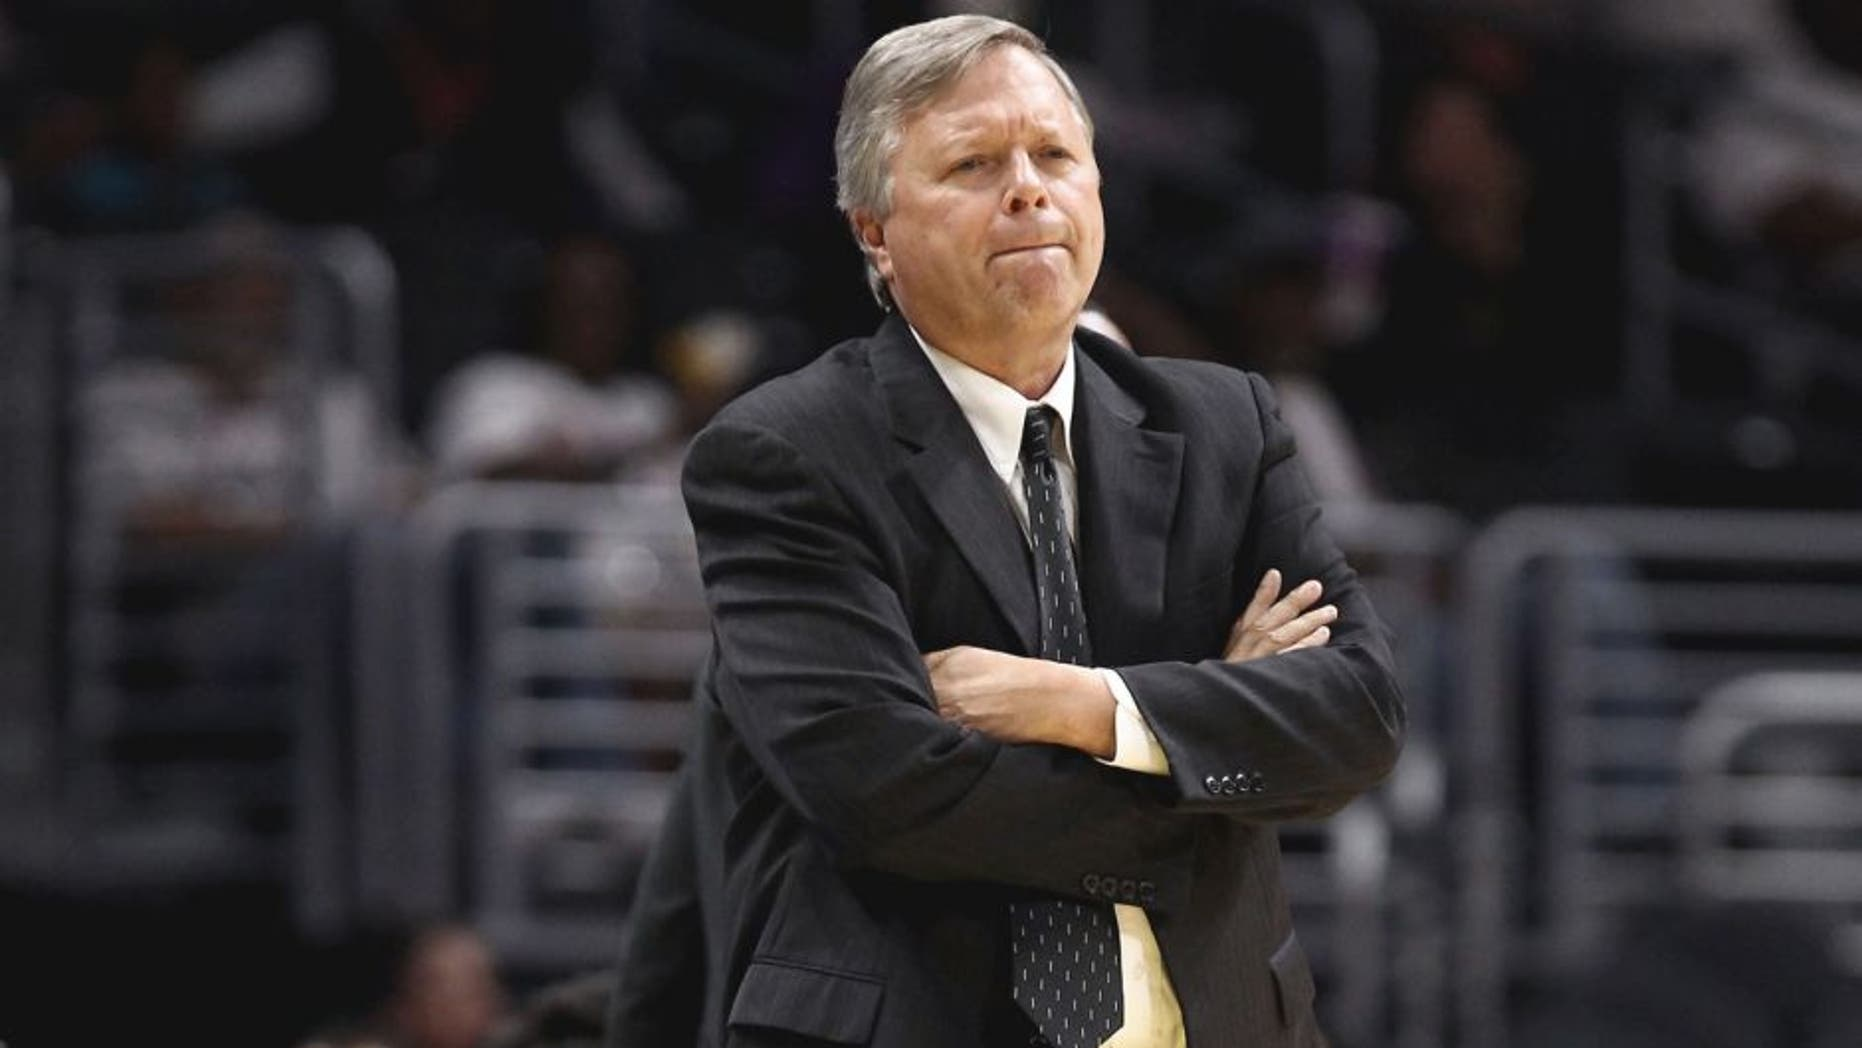 LOS ANGELES, CA - JULY 02: Head Coach Dan Hughes of the San Antonio Stars looks on while his team takes on the Los Angeles Sparks in a WNBA game at Staples Center on July 2, 2015 in Los Angeles, California. (Photo by Leon Bennett/Getty Images)